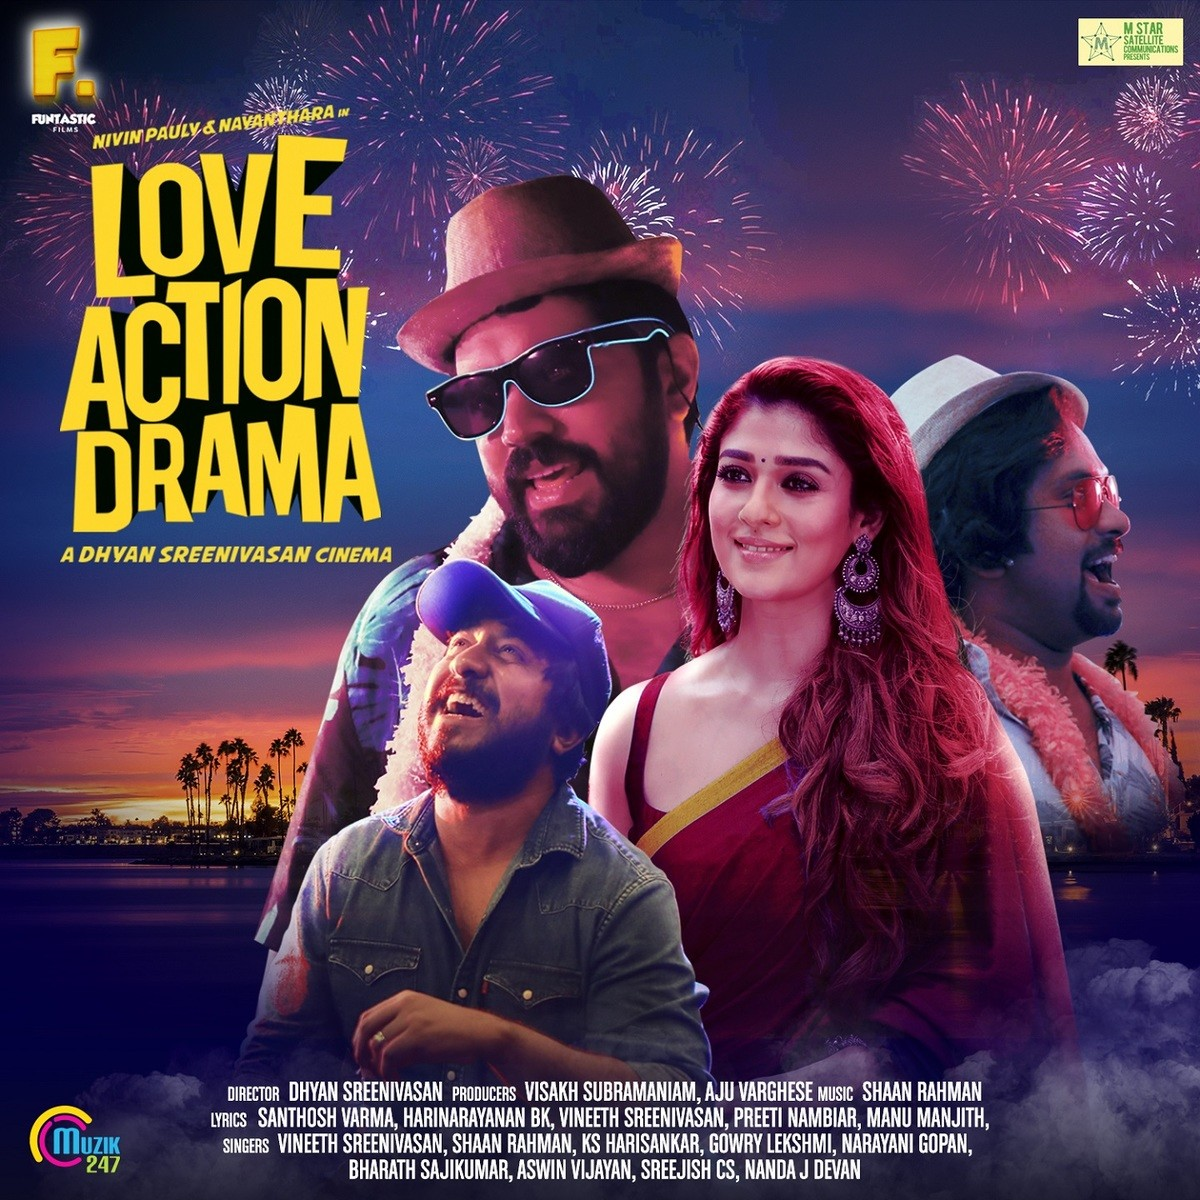 Love Action Drama Songs Download Love Action Drama Mp3 Malayalam Songs Online Free On Gaana Com